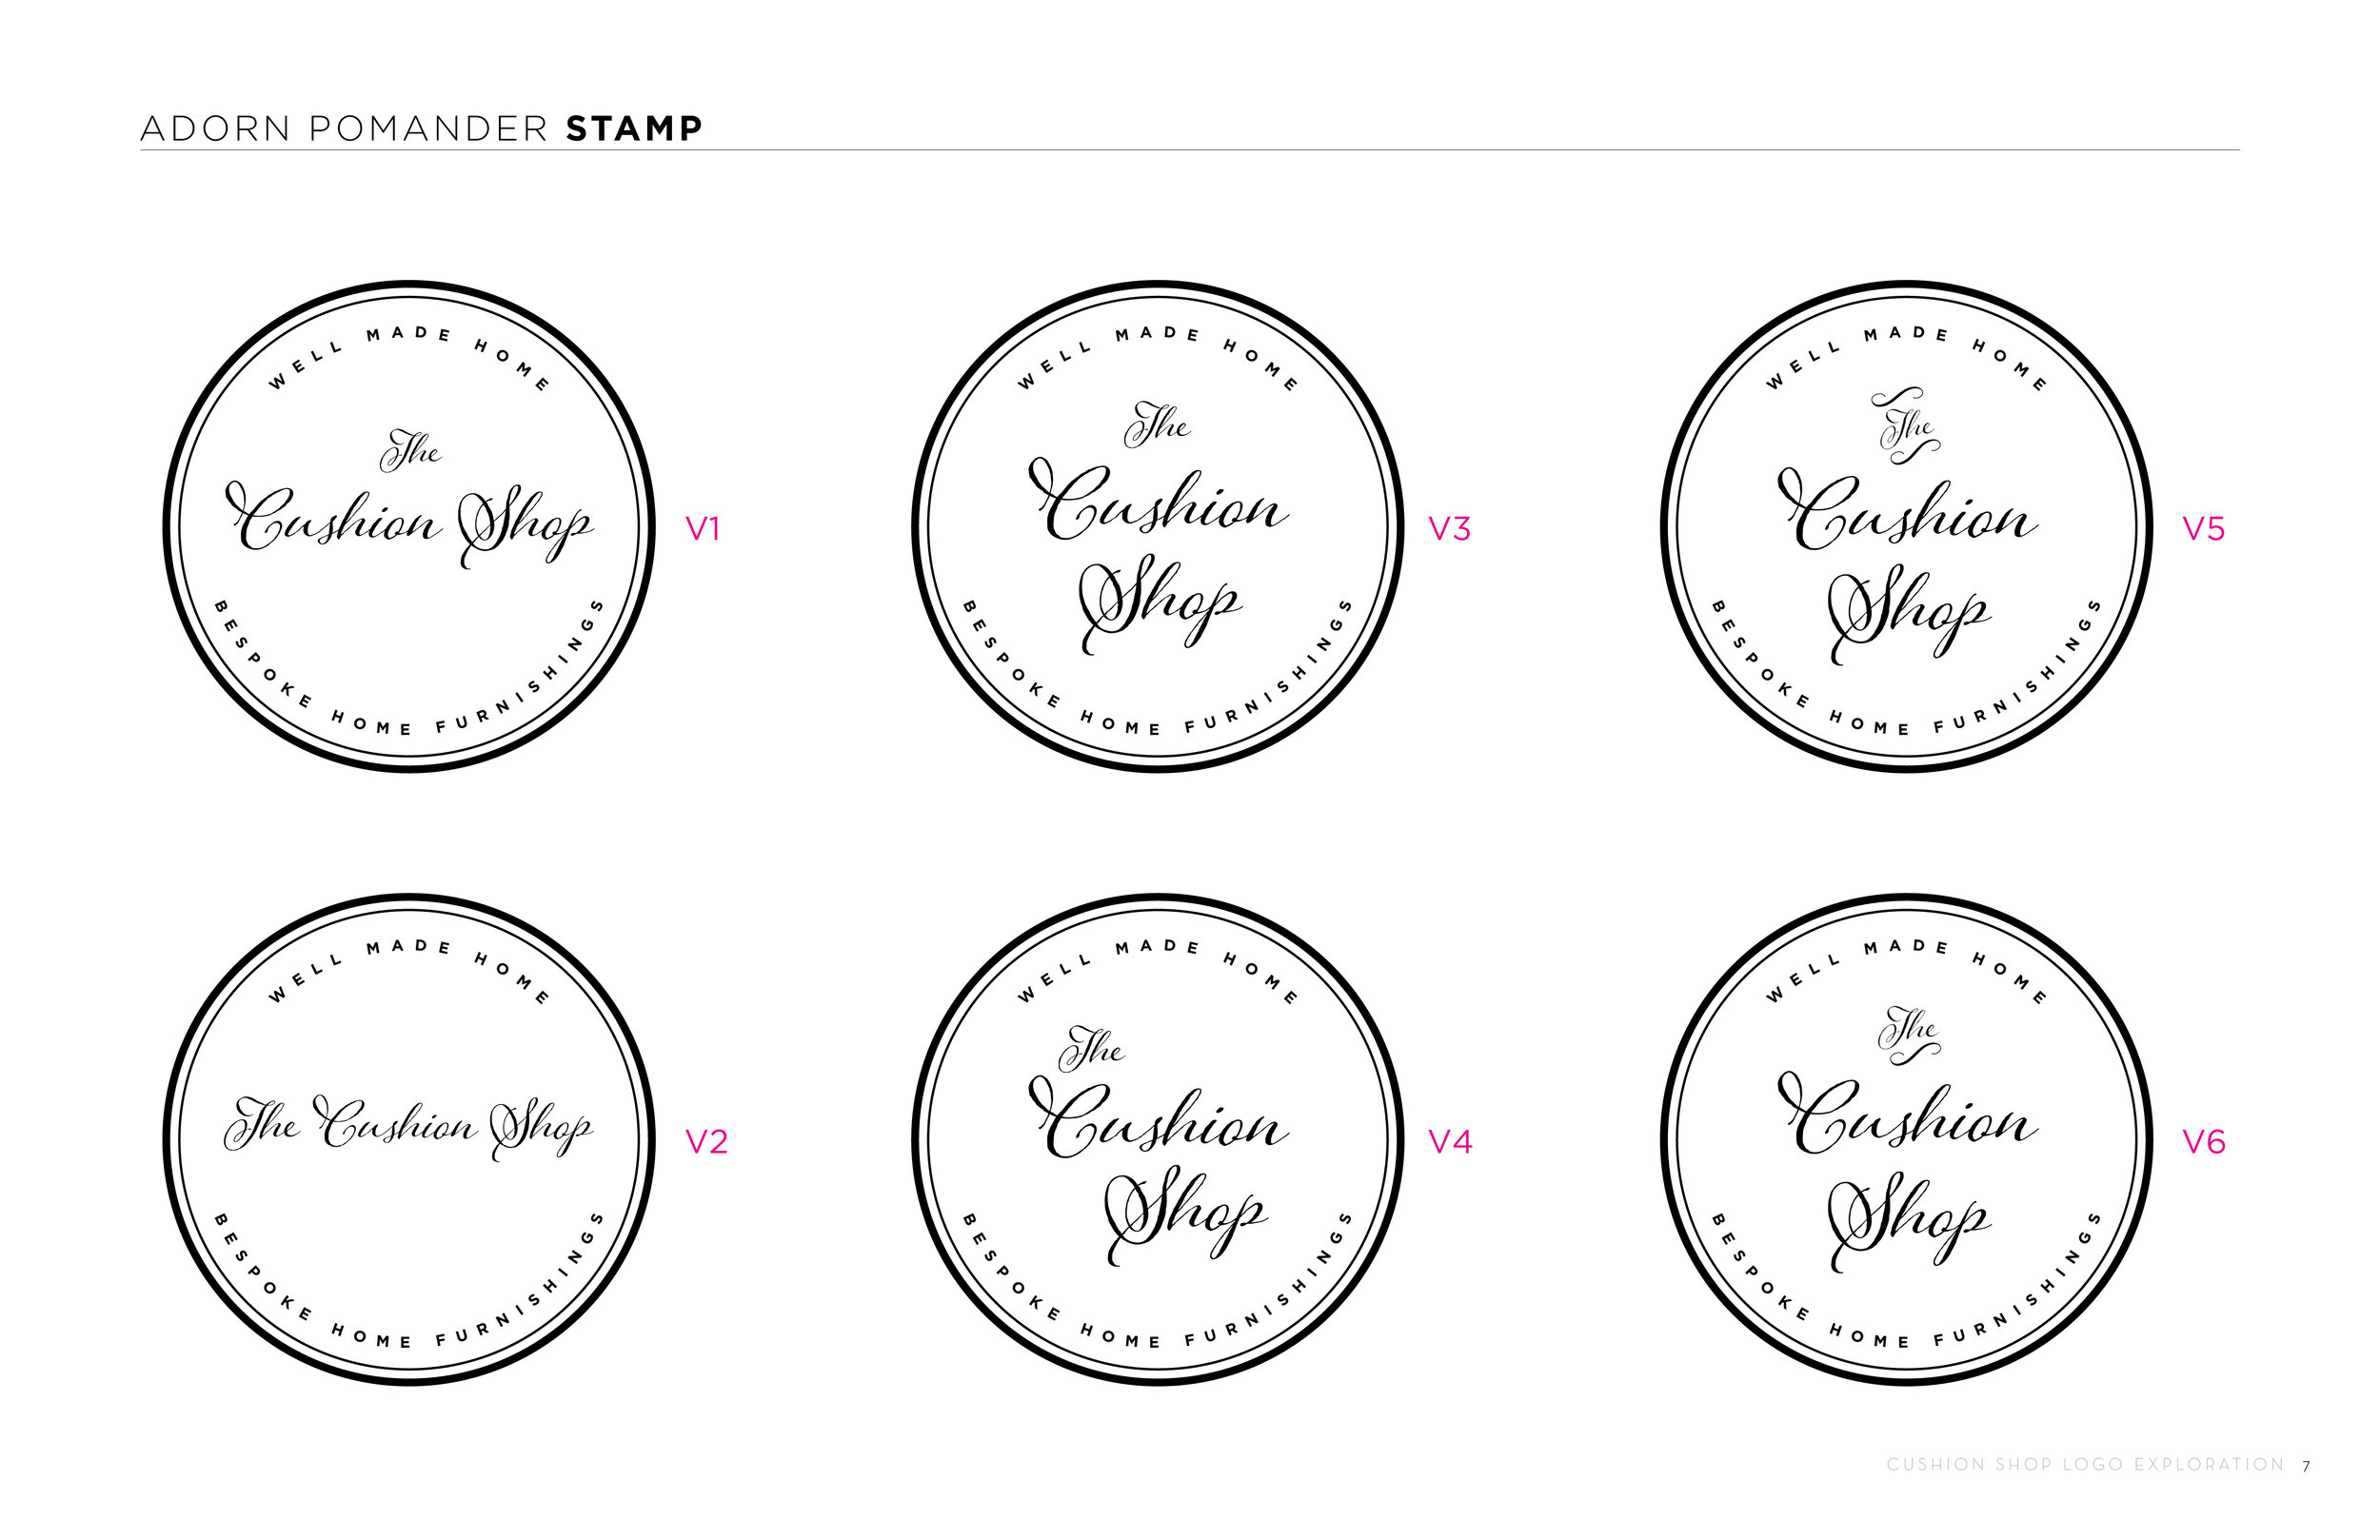 Cushion Shop_Logo Concepts_R10_7.jpg